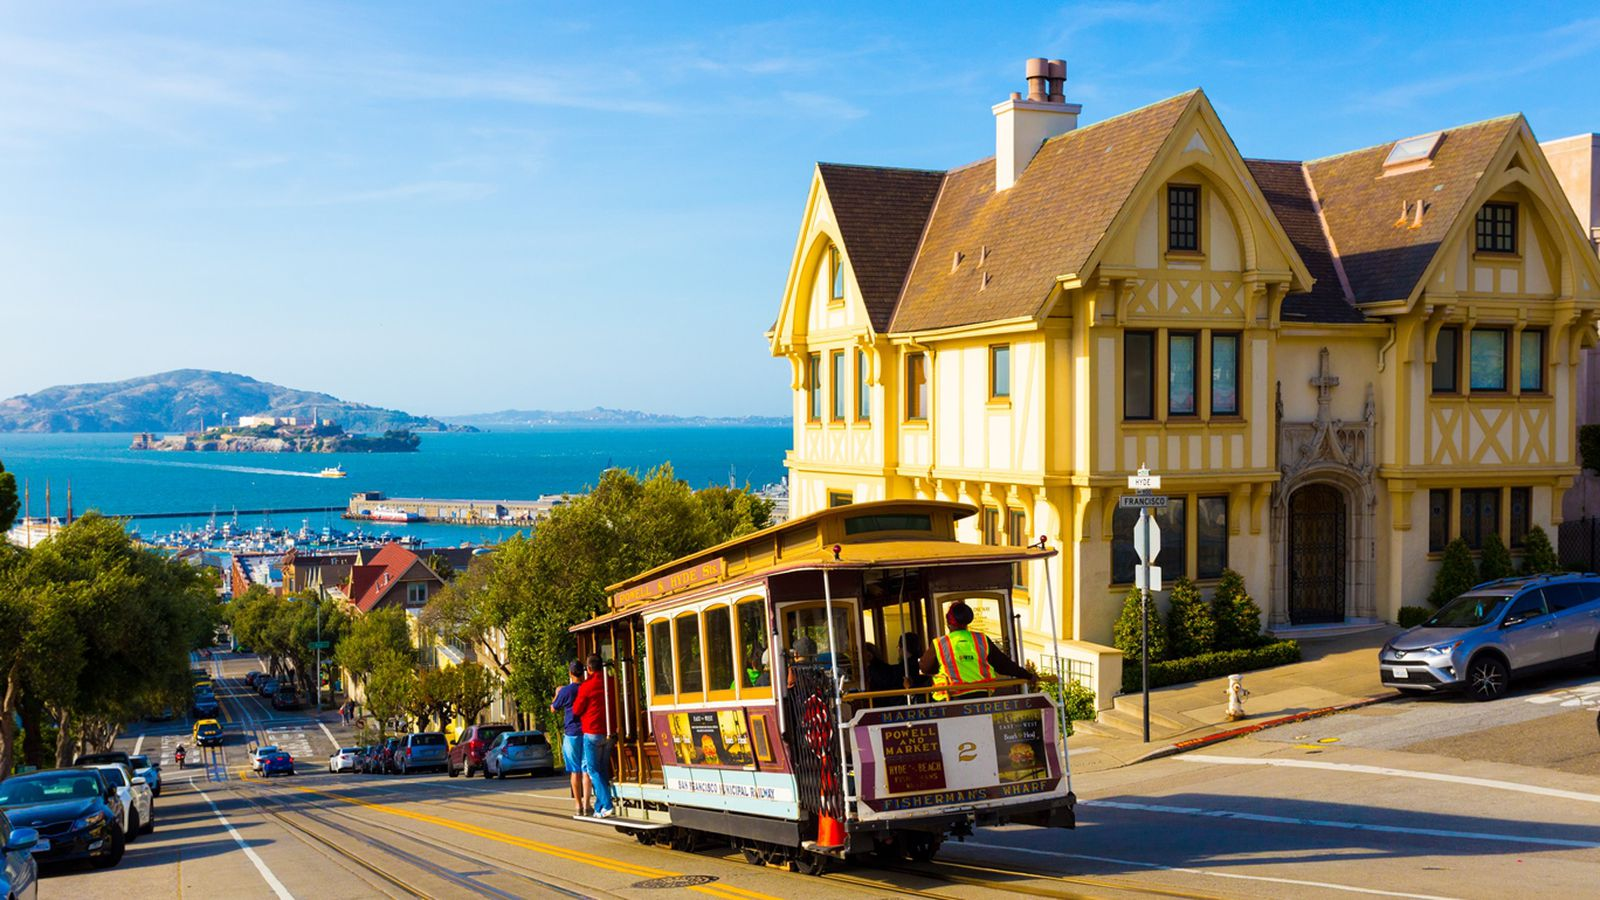 san francisco median home price up to 1 5 million says report curbed sf. Black Bedroom Furniture Sets. Home Design Ideas